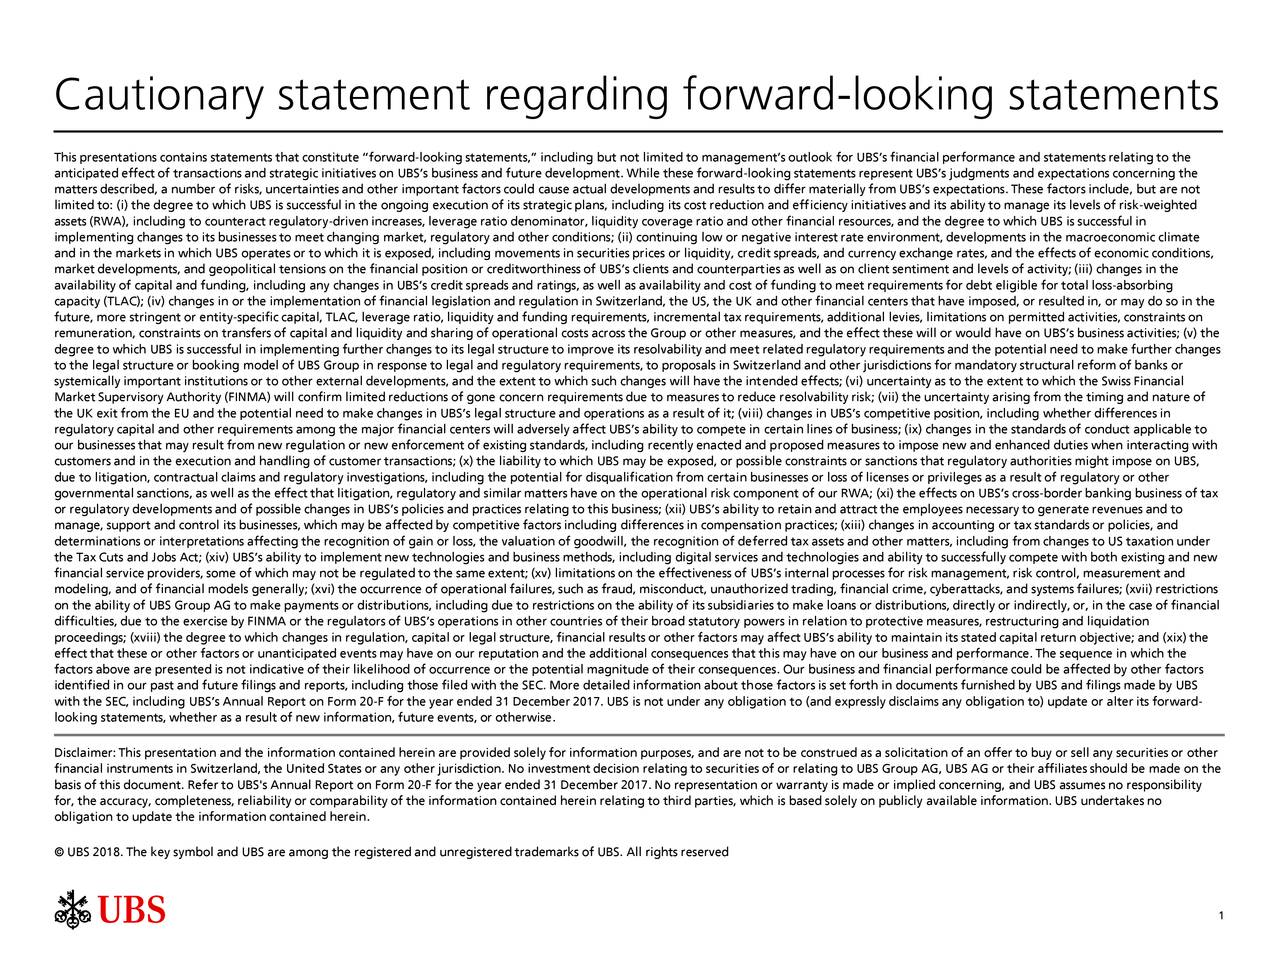 "This presentations contains statements that constitute ""forward-looking statements,"" including but not limited to management's outlook for UBS's financial performance and statements relating to the anticipated effect of transactions and strategic initiatives on UBS's business and future development. While these forward-looking statements represent UBS's judgments and expectations concerning the matters described, a number of risks, uncertainties and other important factors could cause actual developments and results to differ materially from UBS's expectations. These factors include, but are not limited to: (i) the degree to which UBS is successful in the ongoing execution of its strategic plans, including its cost reduction and efficiency initiatives and its ability to manage its levels of risk-weighted assets (RWA), including to counteract regulatory-driven increases, leverage ratio denominator, liquidity coverage ratio and other financial resources, and the degree to which UBS is successful in implementing changes to its businesses to meet changing market, regulatory and other conditions; (ii) continuing low or negative interest rate environment, developments in the macroeconomic climate and in the markets in which UBS operates or to which it is exposed, including movements in securities prices or liquidity, credit spreads, and currency exchange rates, and the effects of economic conditions, market developments, and geopolitical tensions on the financial position or creditworthiness of UBS's clients and counterparties as well as on client sentiment and levels of activity; (iii) changes in the availability of capital and funding, including any changes in UBS's credit spreads and ratings, as well as availability and cost of funding to meet requirements for debt eligible for total loss-absorbing capacity (TLAC); (iv) changes in or the implementation of financial legislation and regulation in Switzerland, the US, the UK and other financial centers that have imposed, or resulted in, or may do so in the future, more stringent or entity-specific capital, TLAC, leverage ratio, liquidity and funding requirements, incremental tax requirements, additional levies, limitations on permitted activities, constraints on remuneration, constraints on transfers of capital and liquidity and sharing of operational costs across the Group or other measures, and the effect these will or would have on UBS's business activities; (v) the degree to which UBS is successful in implementing further changes to its legal structure to improve its resolvability and meet related regulatory requirements and the potential need to make further changes to the legal structure or booking model of UBS Group in response to legal and regulatory requirements, to proposals in Switzerland and other jurisdictions for mandatory structural reform of banks or systemically important institutions or to other external developments, and the extent to which such changes will have the intended effects; (vi) uncertainty as to the extent to which the Swiss Financial Market Supervisory Authority (FINMA) will confirm limited reductions of gone concern requirements due to measures to reduce resolvability risk; (vii) the uncertainty arising from the timing and nature of the UK exit from the EU and the potential need to make changes in UBS's legal structure and operations as a result of it; (viii) changes in UBS's competitive position, including whether differences in regulatory capital and other requirements among the major financial centers will adversely affect UBS's ability to compete in certain lines of business; (ix) changes in the standards of conduct applicable to our businesses that may result from new regulation or new enforcement of existing standards, including recently enacted and proposed measures to impose new and enhanced duties when interacting with customers and in the execution and handling of customer transactions; (x) the liability to which UBS may be exposed, or possible constraints or sanctions that regulatory authorities might impose on UBS, due to litigation, contractual claims and regulatory investigations, including the potential for disqualification from certain businesses or loss of licenses or privileges as a result of regulatory or other governmental sanctions, as well as the effect that litigation, regulatory and similar matters have on the operational risk component of our RWA; (xi) the effects on UBS's cross-border banking business of tax or regulatory developments and of possible changes in UBS's policies and practices relating to this business; (xii) UBS's ability to retain and attract the employees necessary to generate revenues and to manage, support and control its businesses, which may be affected by competitive factors including differences in compensation practices; (xiii) changes in accounting or tax standards or policies, and determinations or interpretations affecting the recognition of gain or loss, the valuation of goodwill, the recognition of deferred tax assets and other matters, including from changes to US taxation under the Tax Cuts and Jobs Act; (xiv) UBS's ability to implement new technologies and business methods, including digital services and technologies and ability to successfully compete with both existing and new financial service providers, some of which may not be regulated to the same extent; (xv) limitations on the effectiveness of UBS's internal processes for risk management, risk control, measurement and modeling, and of financial models generally; (xvi) the occurrence of operational failures, such as fraud, misconduct, unauthorized trading, financial crime, cyberattacks, and systems failures; (xvii) restrictions on the ability of UBS Group AG to make payments or distributions, including due to restrictions on the ability of its subsidiaries to make loans or distributions, directly or indirectly, or, in the case of financial difficulties, due to the exercise by FINMA or the regulators of UBS's operations in other countries of their broad statutory powers in relation to protective measures, restructuring and liquidation proceedings; (xviii) the degree to which changes in regulation, capital or legal structure, financial results or other factors may affect UBS's ability to maintain its stated capital return objective; and (xix) the effect that these or other factors or unanticipated events may have on our reputation and the additional consequences that this may have on our business and performance. The sequence in which the factors above are presented is not indicative of their likelihood of occurrence or the potential magnitude of their consequences. Our business and financial performance could be affected by other factors identified in our past and future filings and reports, including those filed with the SEC. More detailed information about those factors is set forth in documents furnished by UBS and filings made by UBS with the SEC, including UBS's Annual Report on Form 20-F for the year ended 31 December 2017. UBS is not under any obligation to (and expressly disclaims any obligation to) update or alter its forward- looking statements, whether as a result of new information, future events, or otherwise. Disclaimer: This presentation and the information contained herein are provided solely for information purposes, and are not to be construed as a solicitation of an offer to buy or sell any securities or other financial instruments in Switzerland, the United States or any other jurisdiction. No investment decision relating to securities of or relating to UBS Group AG, UBS AG or their affiliates should be made on the basis of this document. Refer to UBS's Annual Report on Form 20-F for the year ended 31 December 2017. No representation or warranty is made or implied concerning, and UBS assumes no responsibility for, the accuracy, completeness, reliability or comparability of the information contained herein relating to third parties, which is based solely on publicly available information. UBS undertakes no obligation to update the information contained herein. © UBS 2018. The key symbol and UBS are among the registered and unregistered trademarks of UBS. All rights reserved 1"